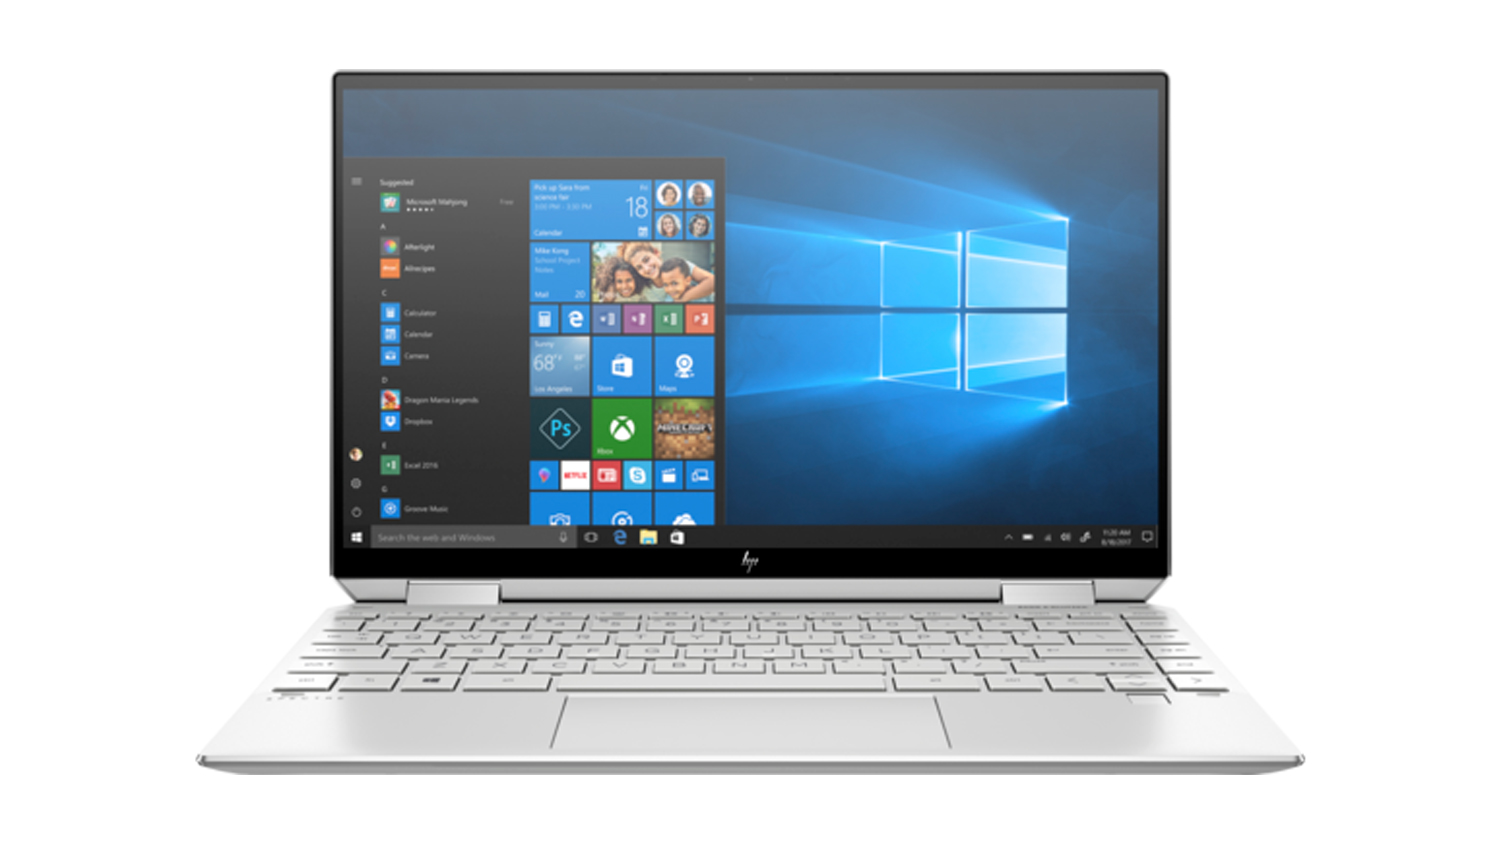 The HP Spectre x360 (2021) from the front against a white background